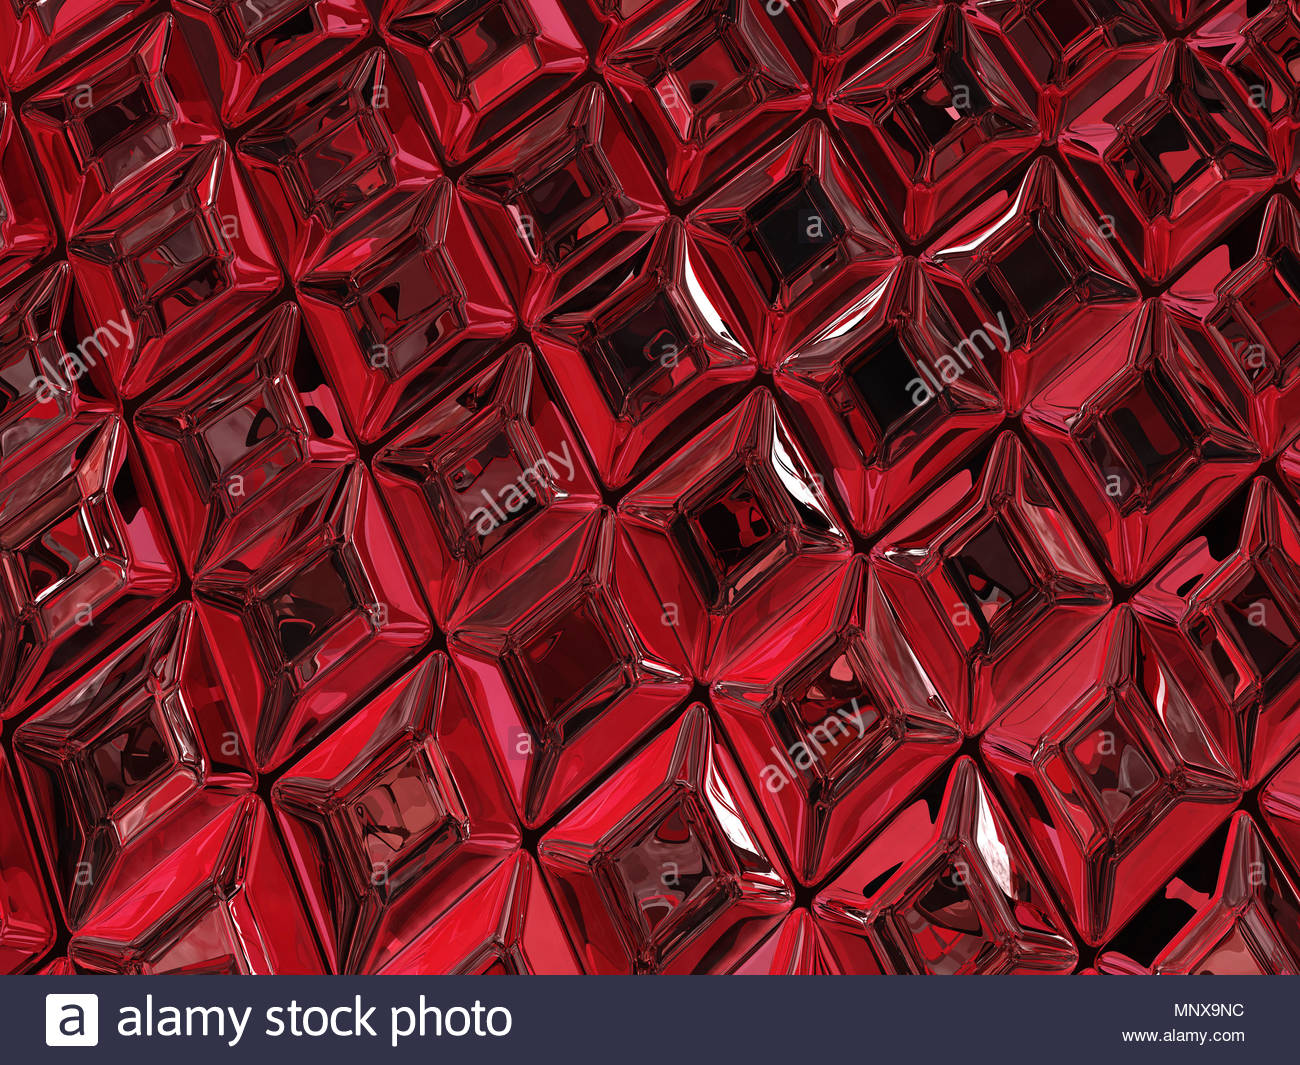 Ruby jewel surface luxury 3d illustration horizontal texture 1300x1065